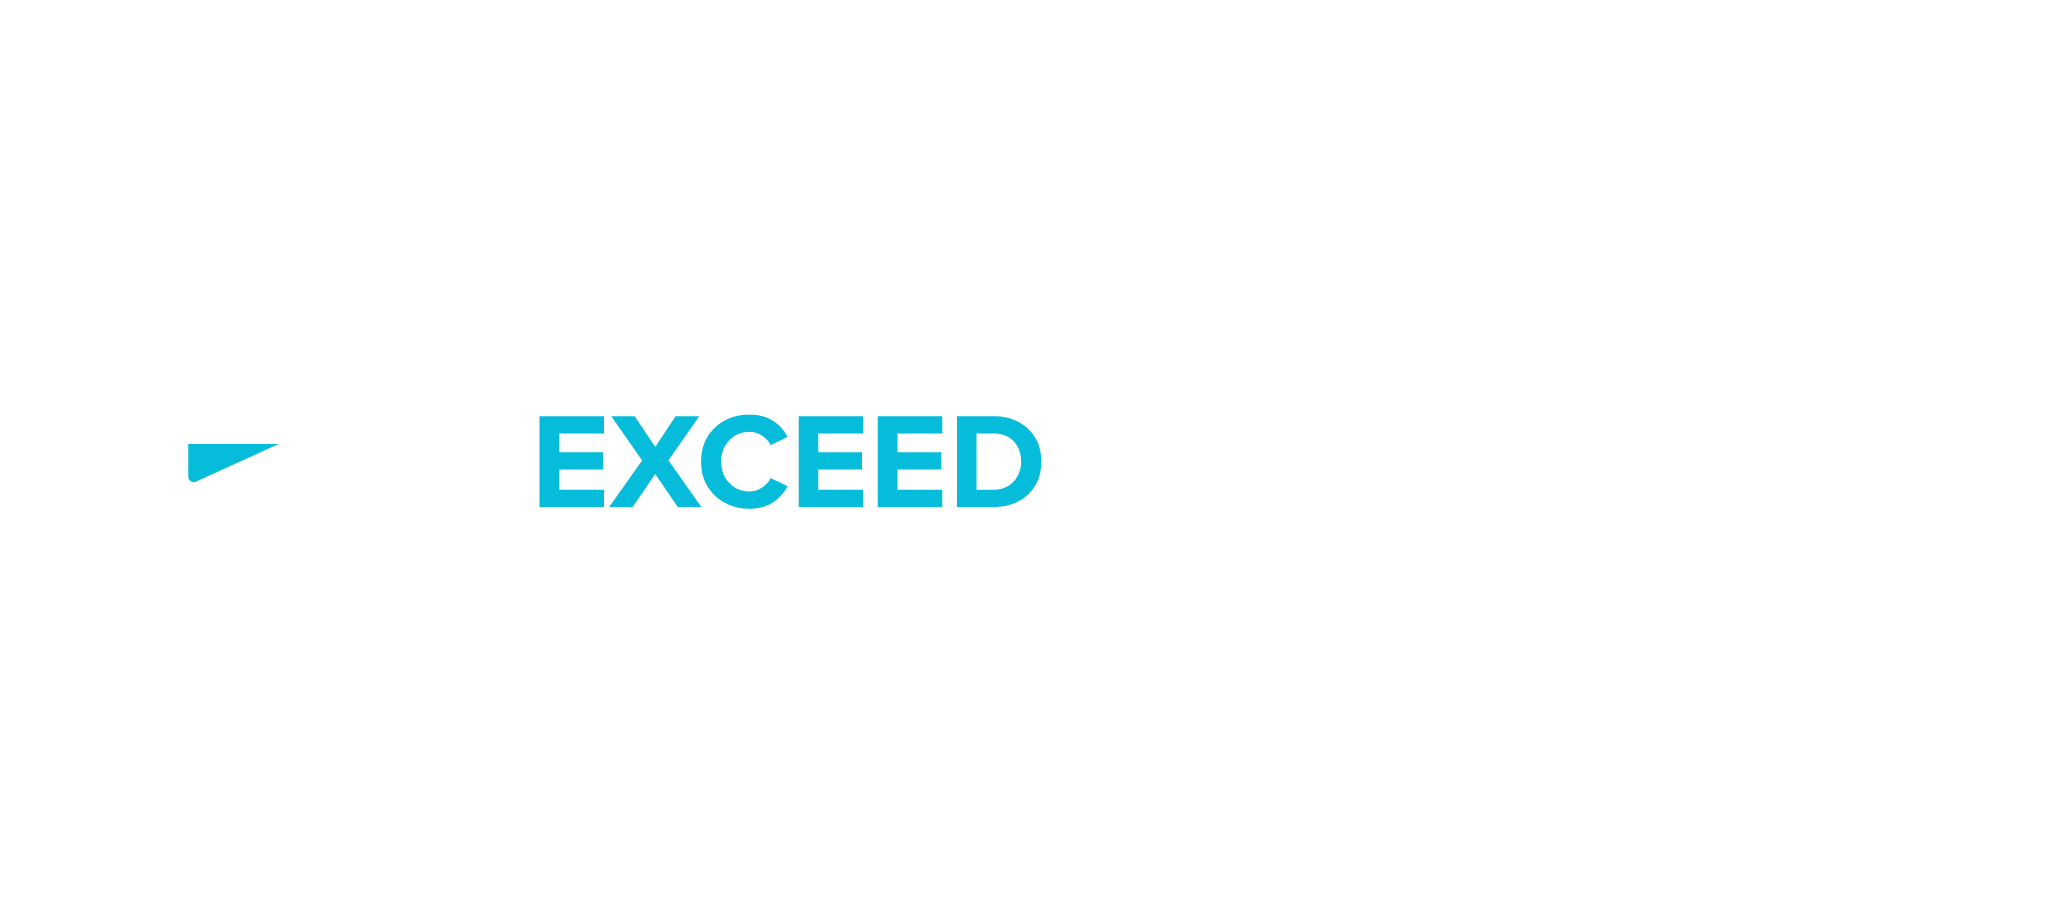 The Exceed Masterclass